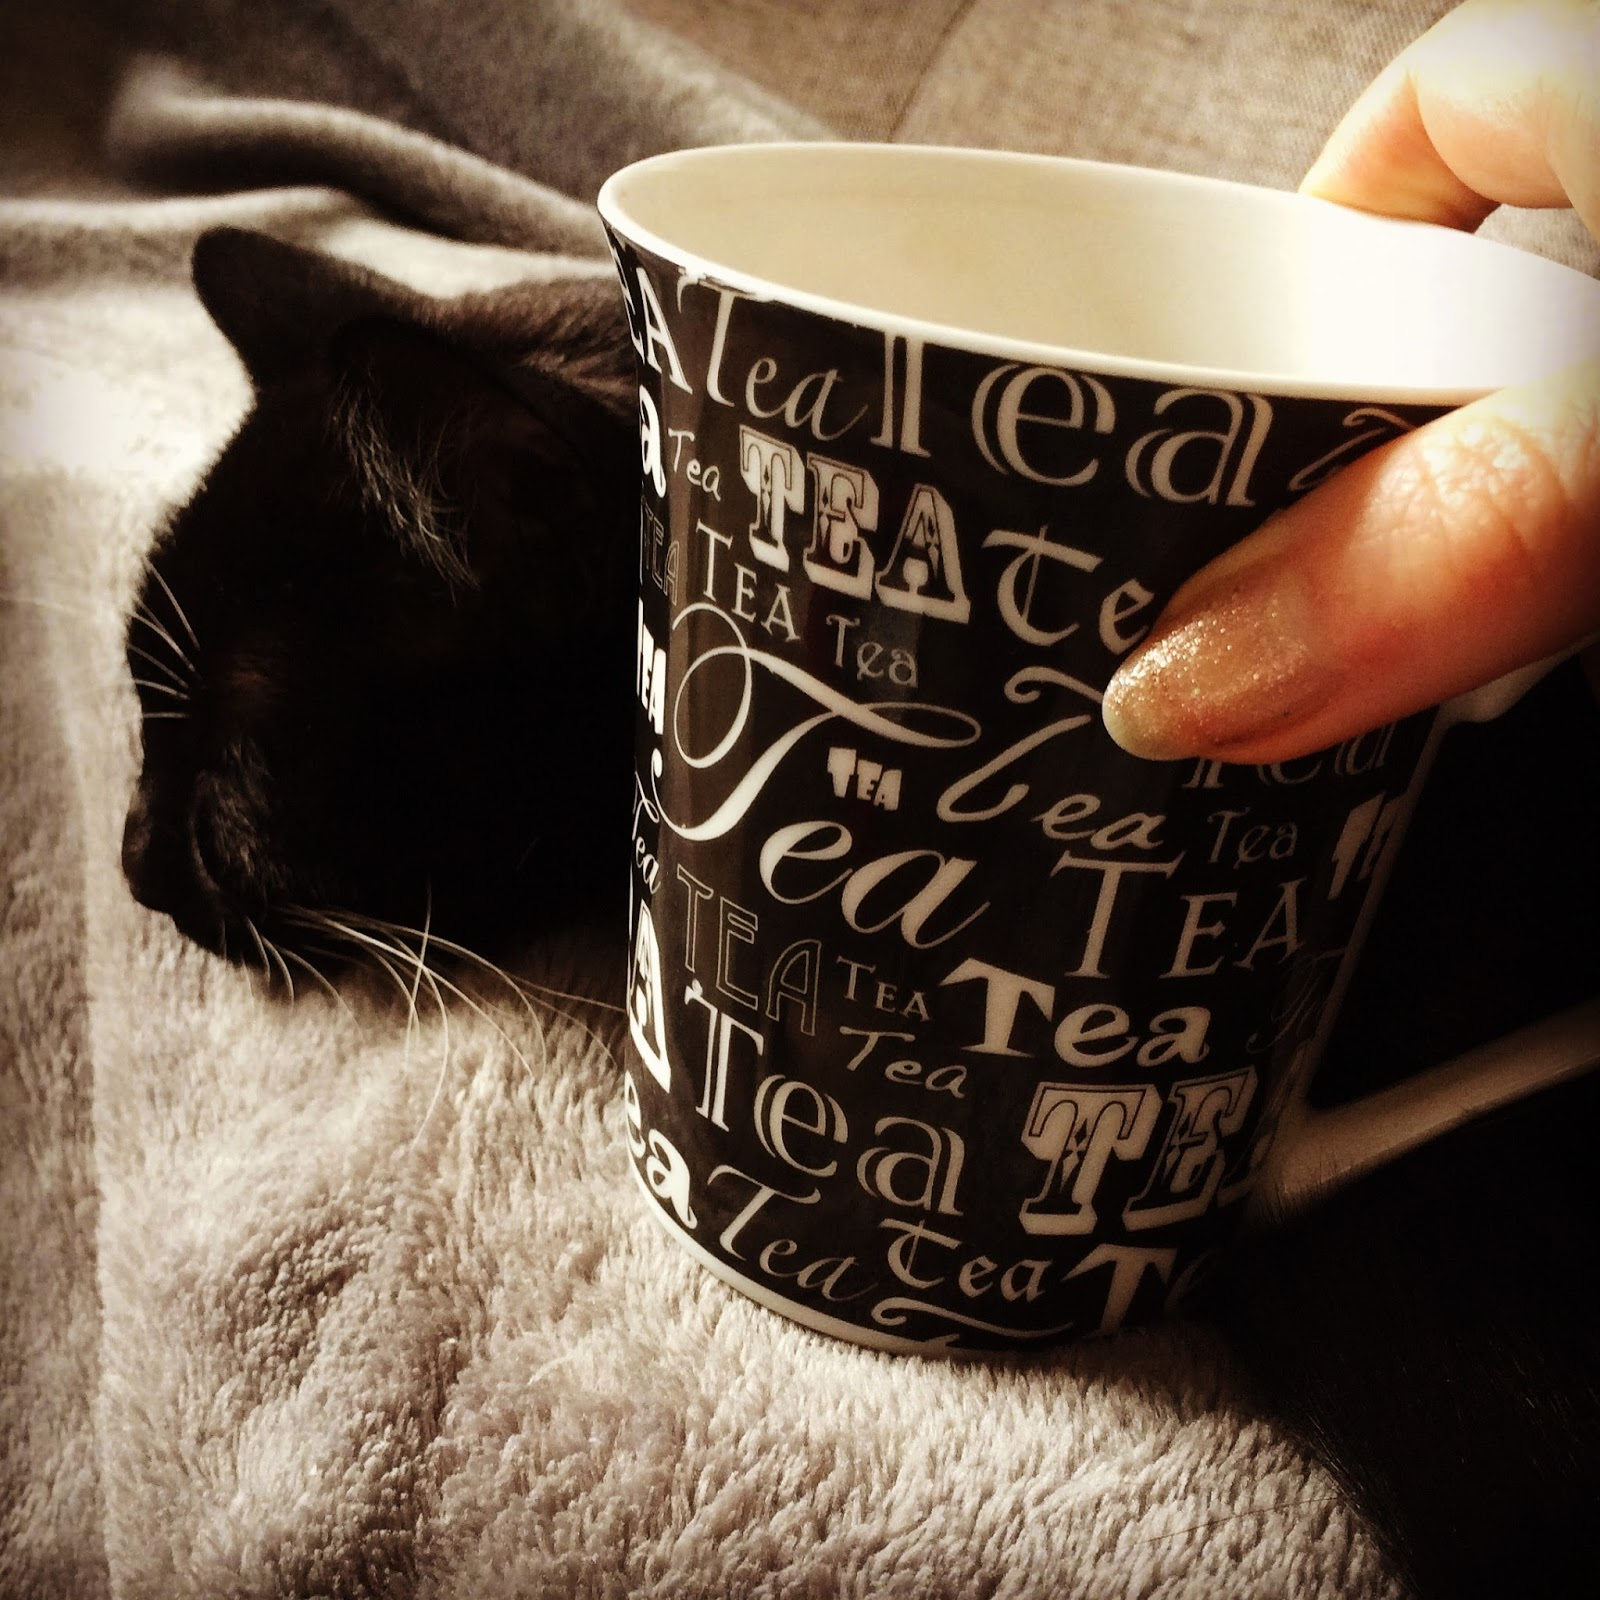 Here Have A Photo Of A Cute Cat, Fuzzy Blanket, And Tea Does That Make It  Better?